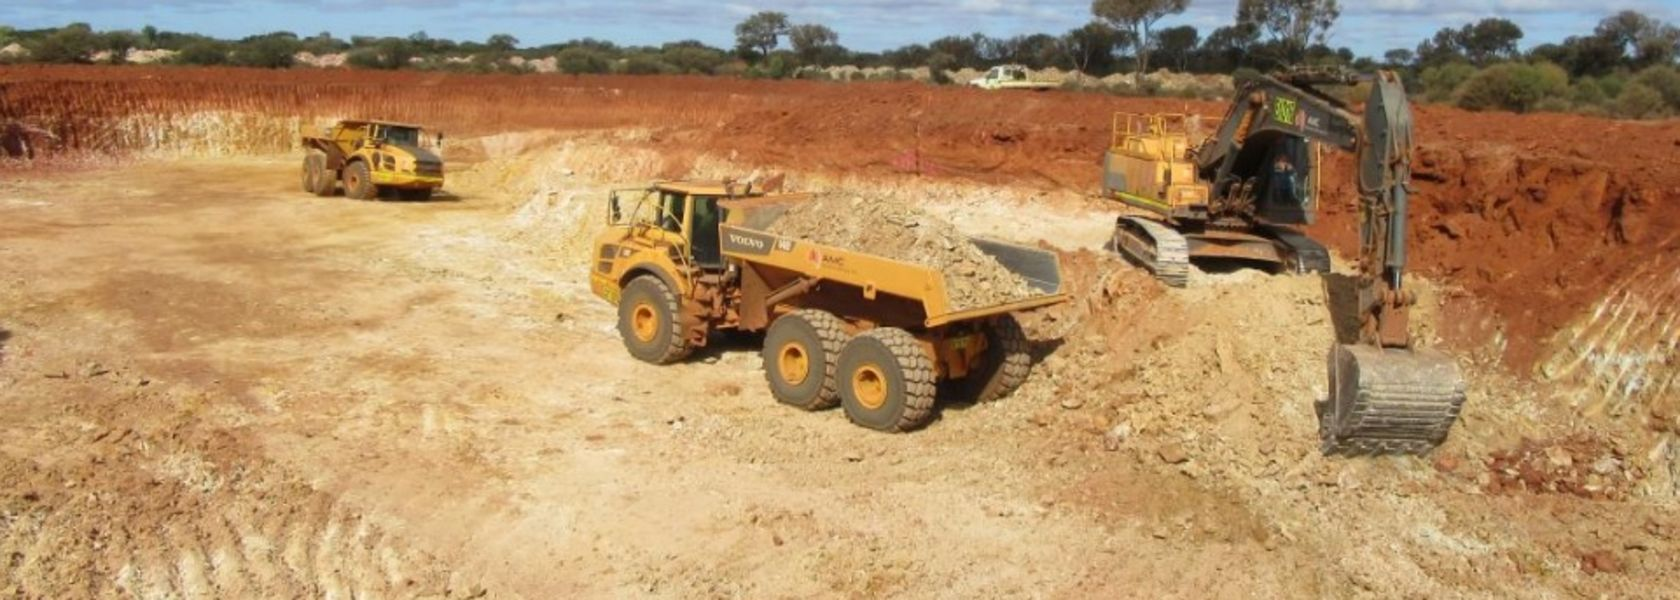 Leonora gold project cost blowout confirmed